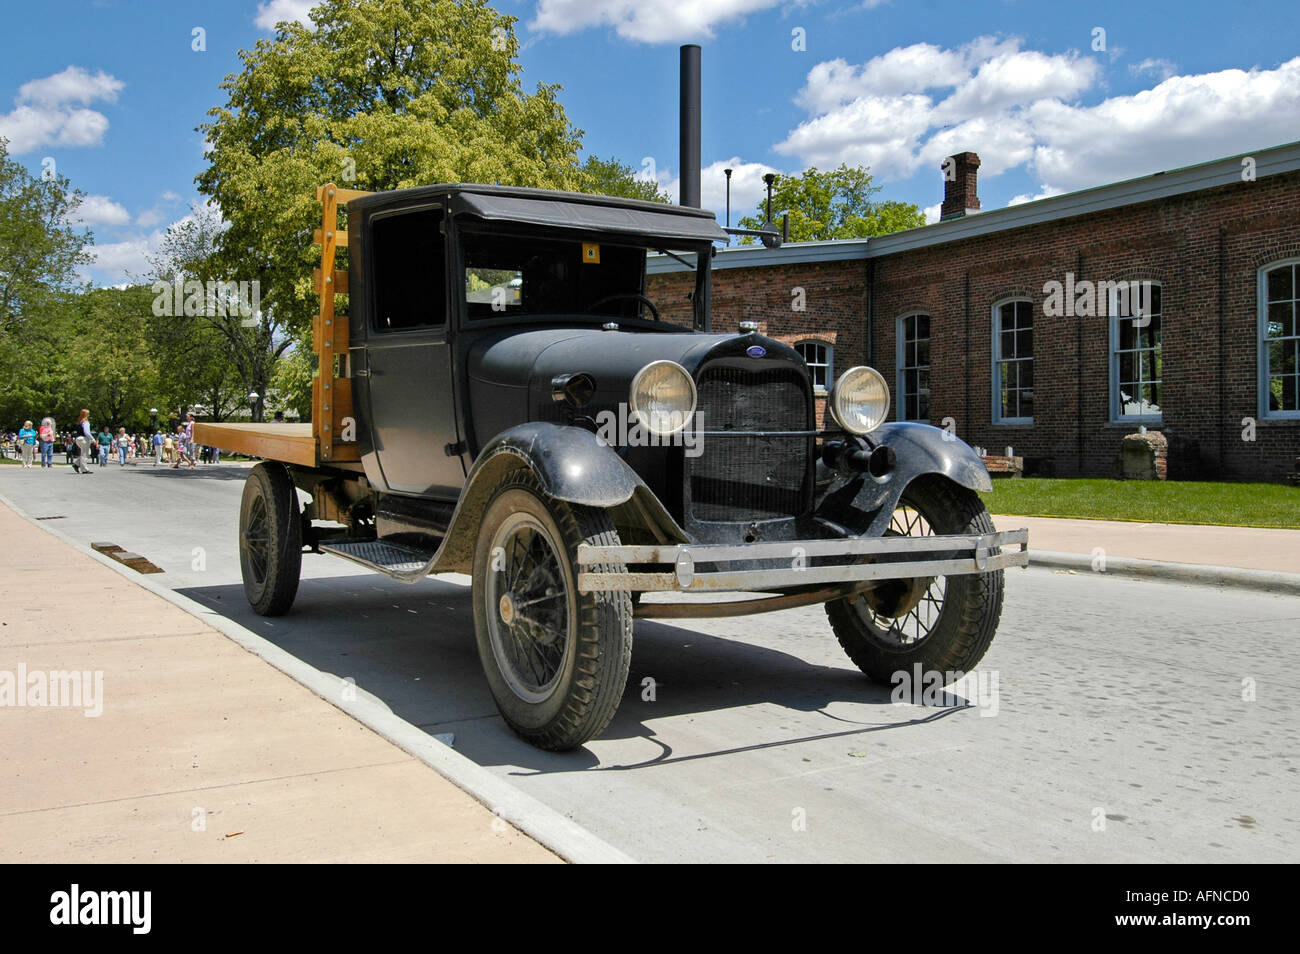 Delivery truck at Historic Greenfield Village and Henry Ford